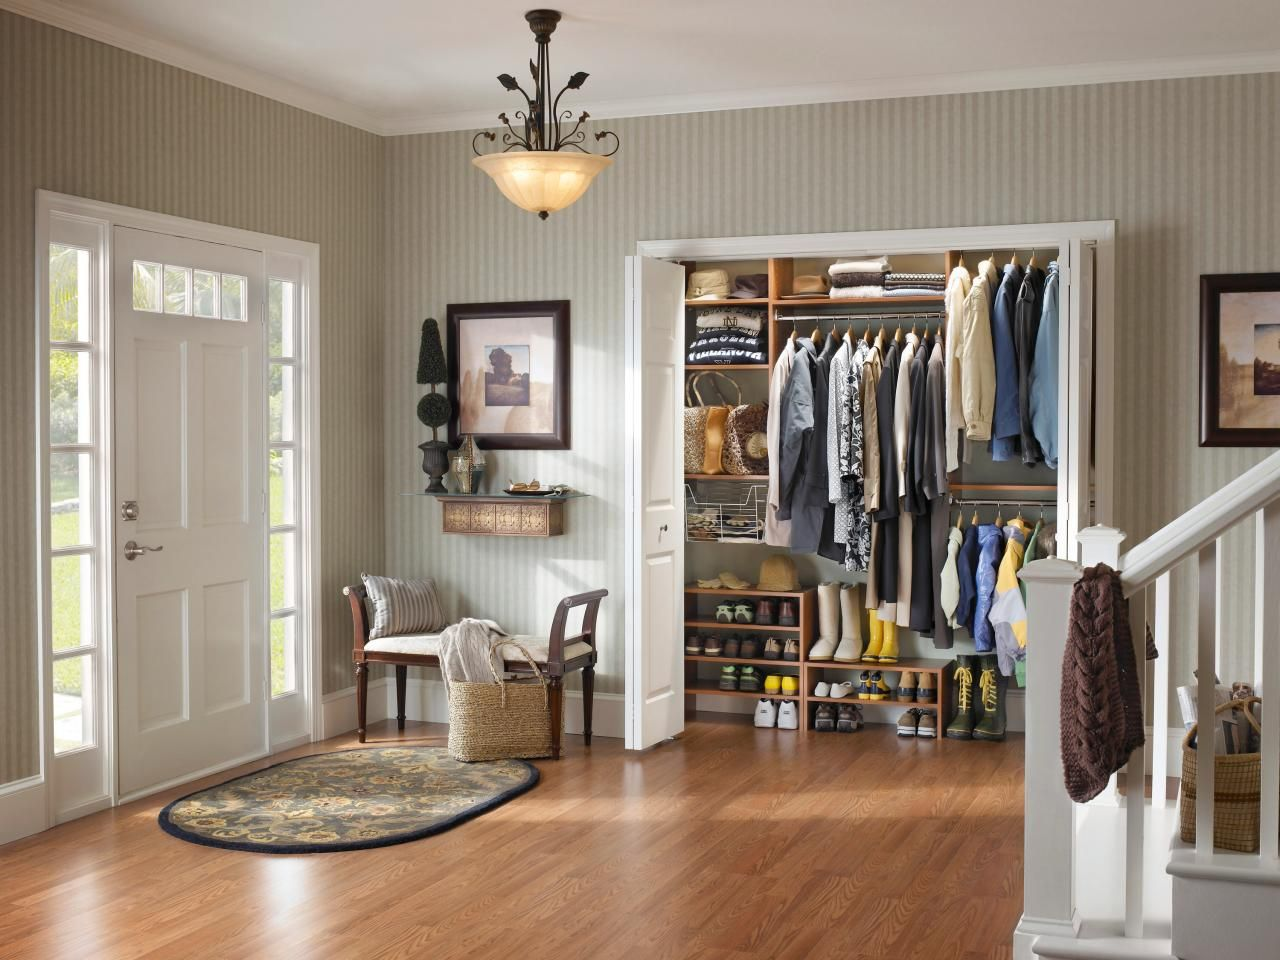 Living Room Closet Design Simple 10 Stylish Reachin Closets  Hgtv Foyers And Clutter Inspiration